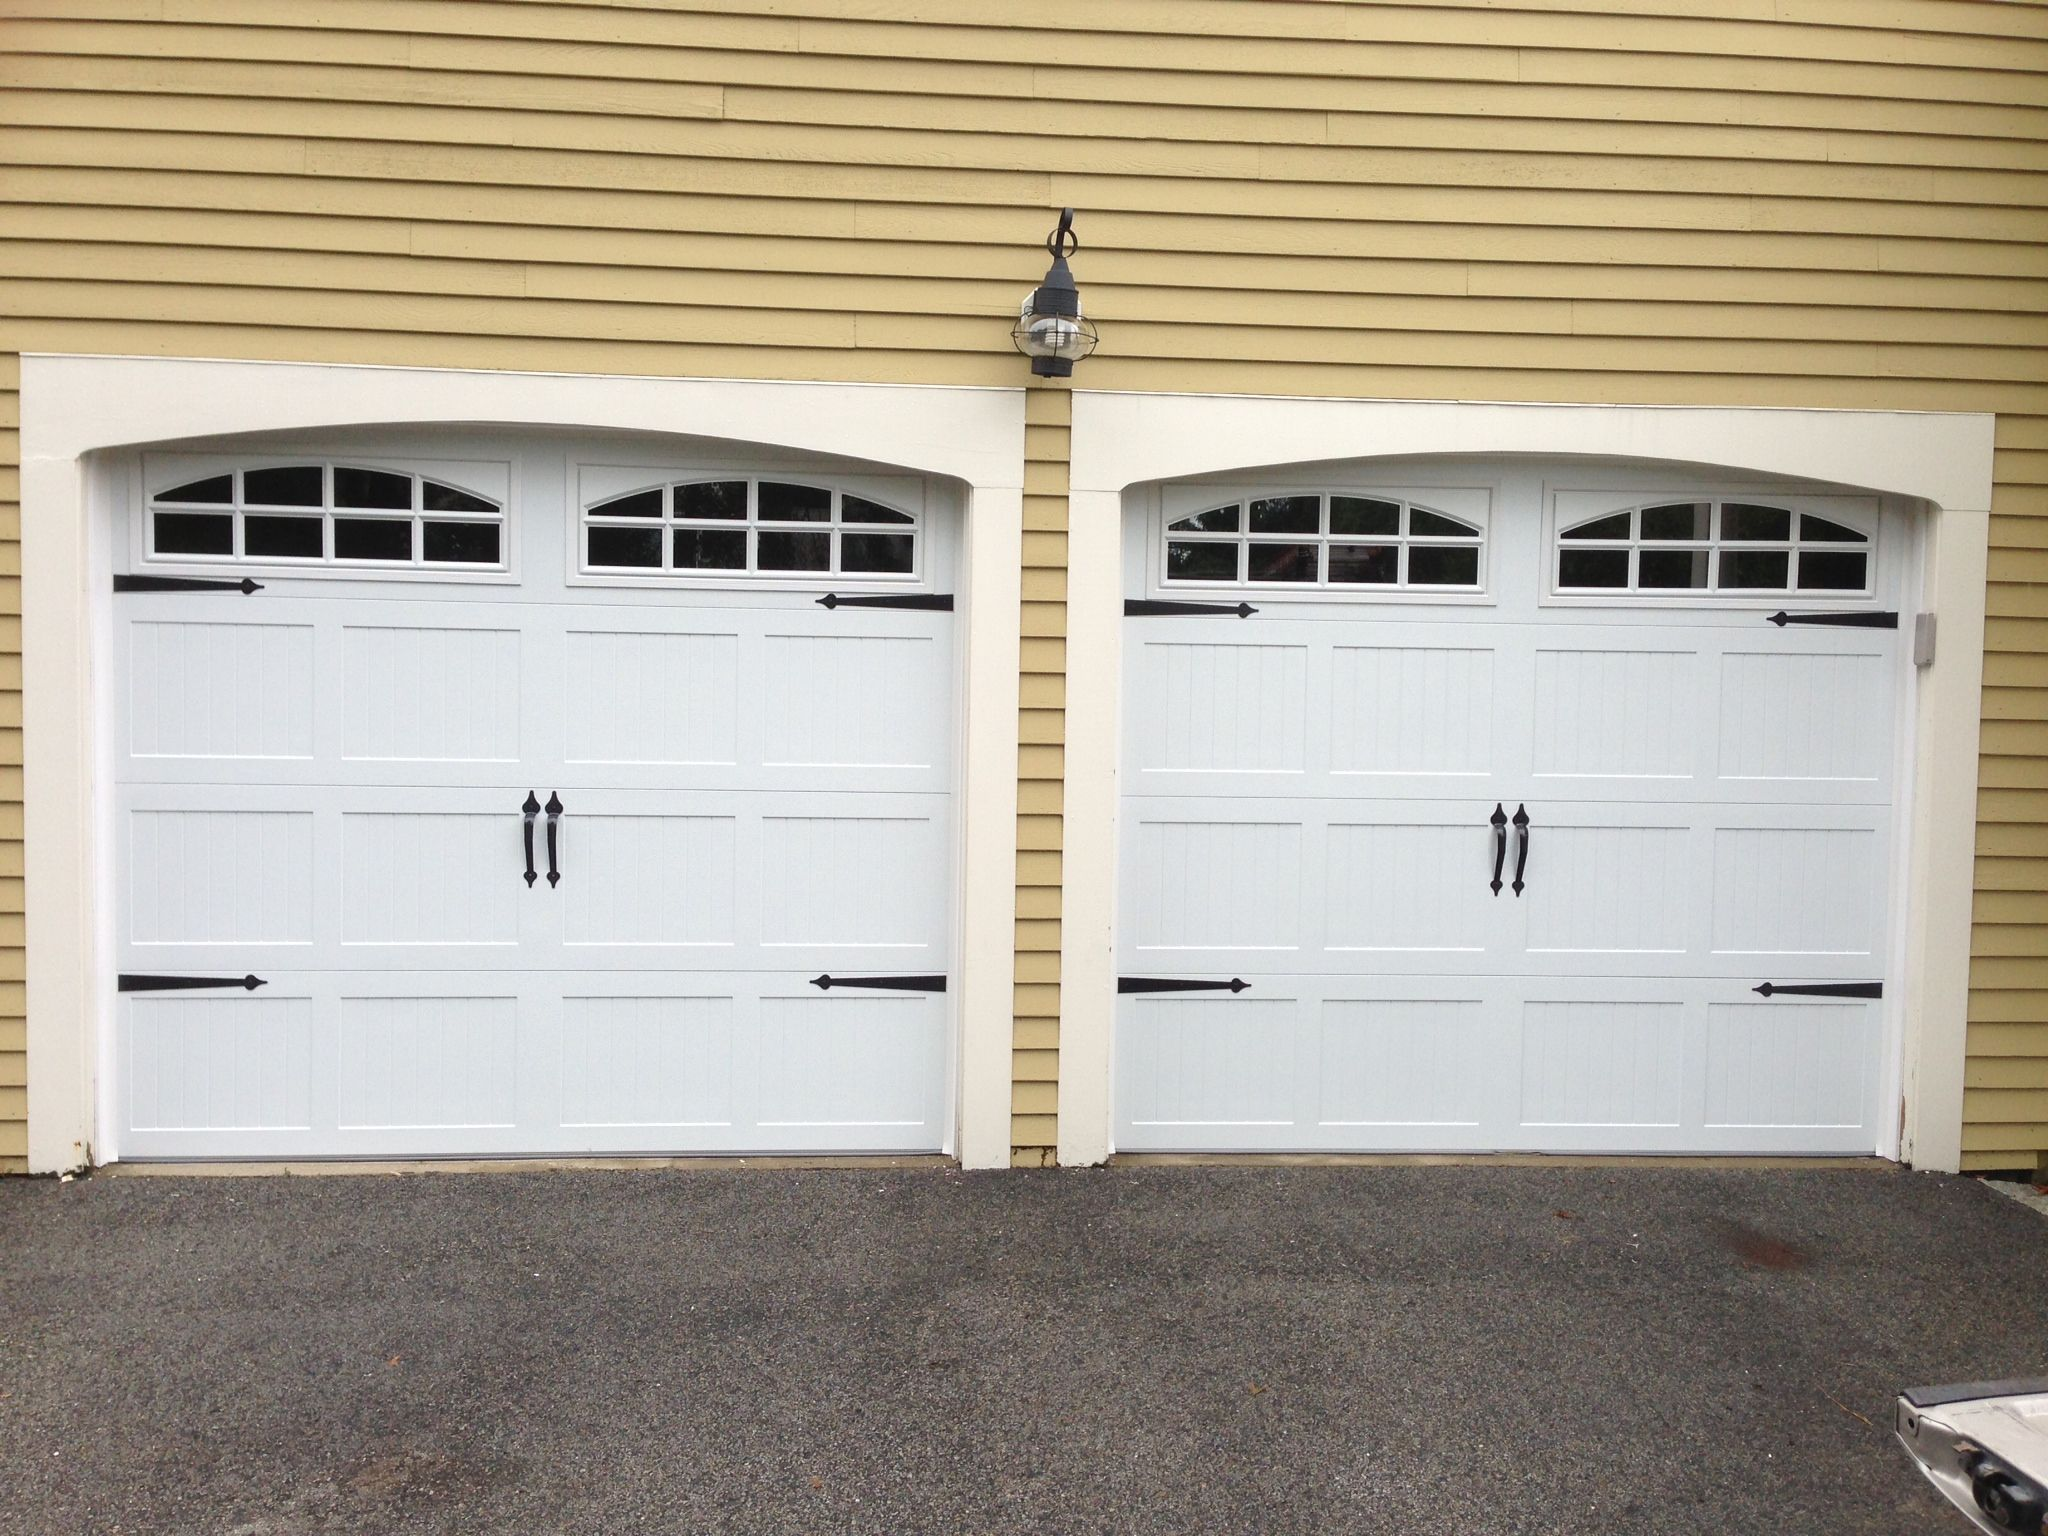 C H I Overhead Doors Model 5216 Steel Carriage House